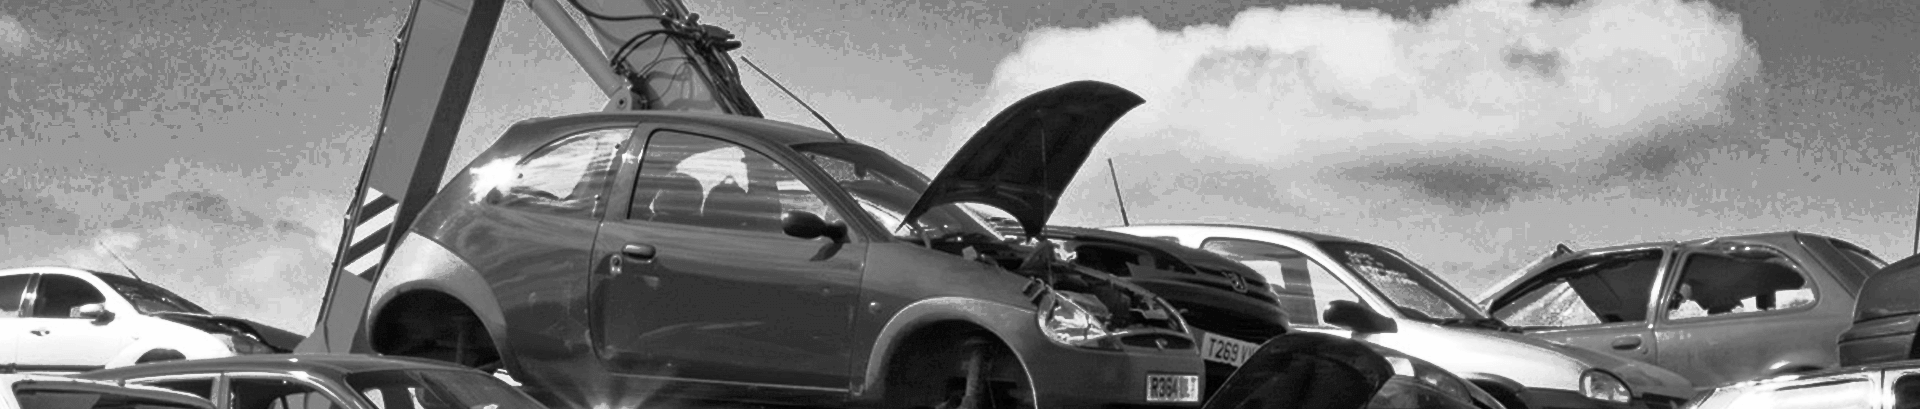 Crane lifts a wrecked car and places it on a pile of scrap cars at our car wrecking yard. Shown on bigger screens than mobile phones.